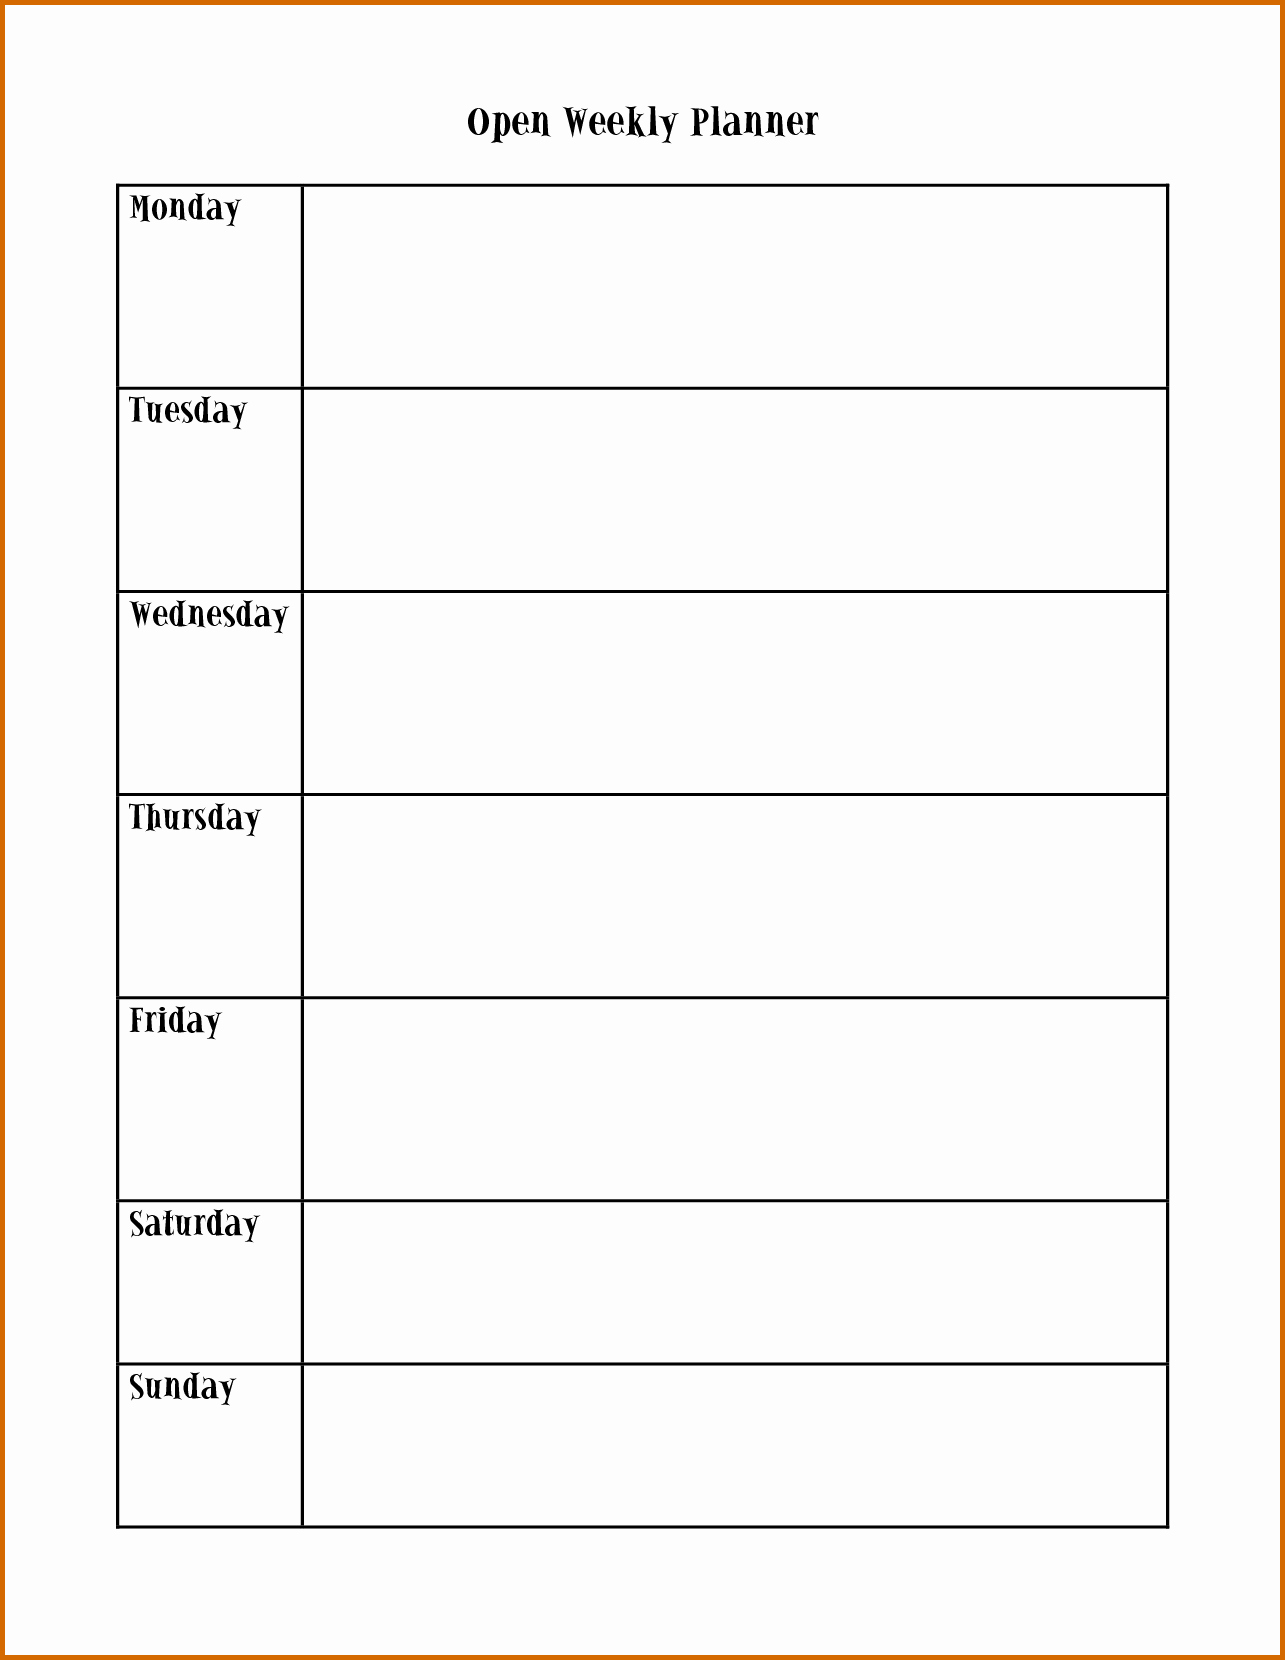 Schedule Plate Monday Through Friday Weekly Calendar Word | Smorad intended for Template Monday Through Friday Calendar